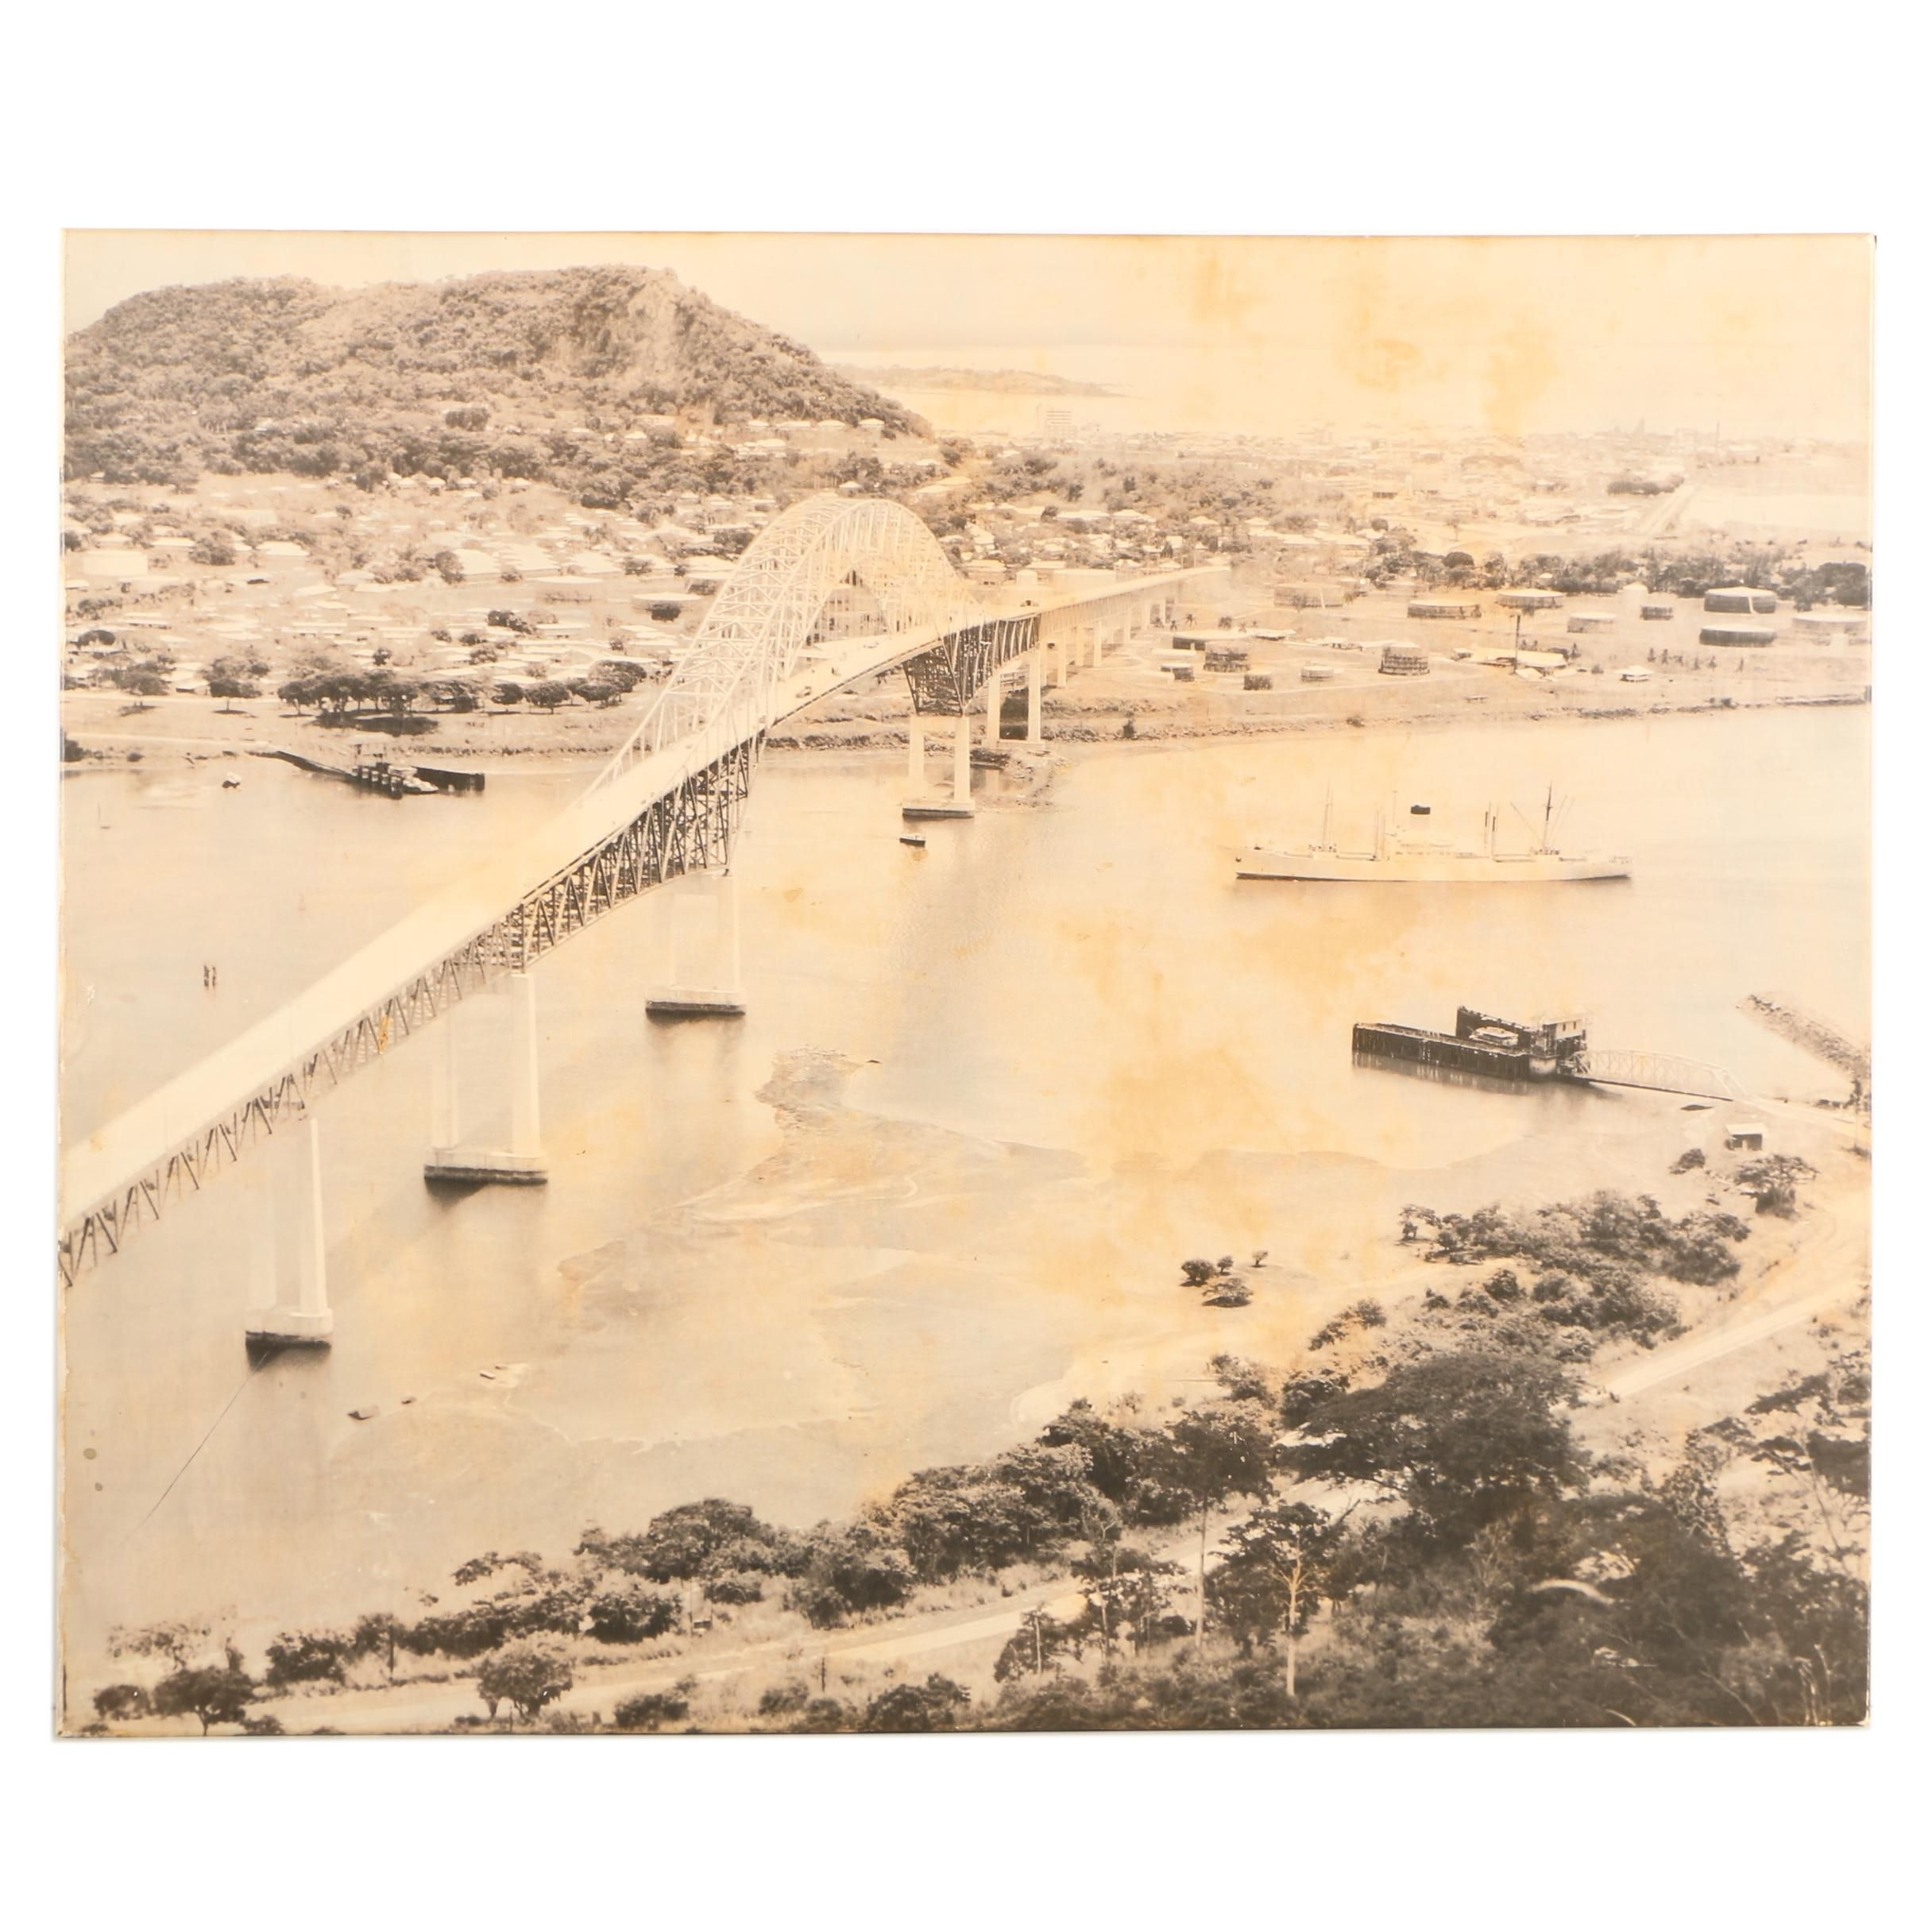 Photographic Enlargement of the Panama Canal